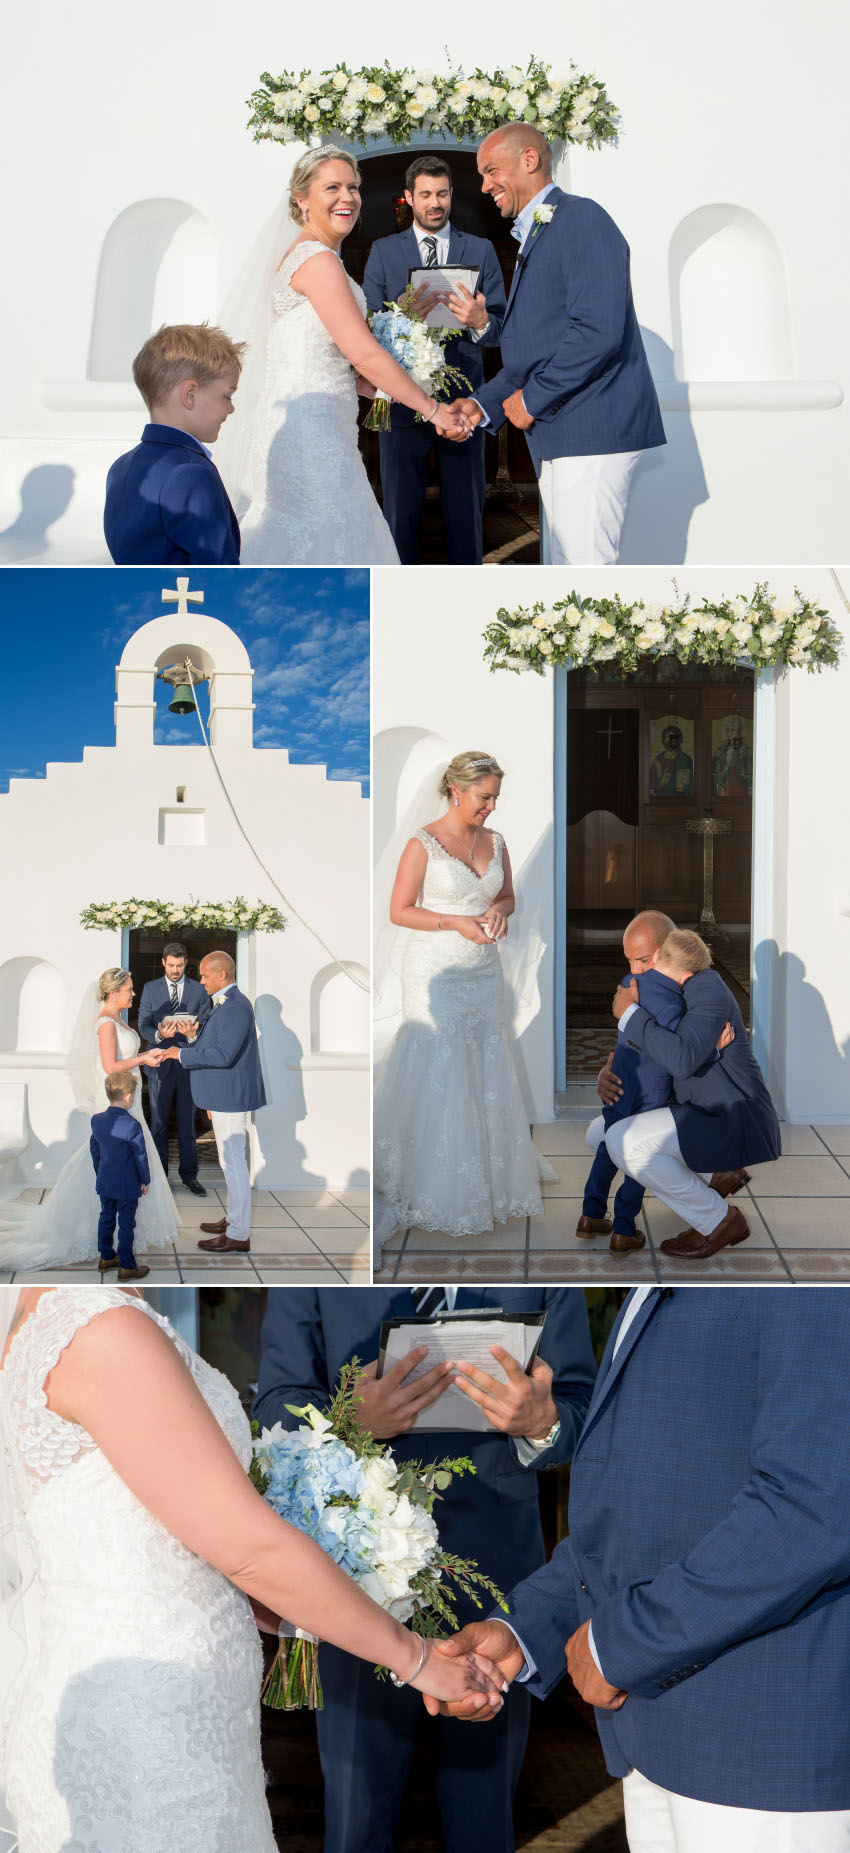 Ceremony photograph from a wedding photography in Mykonos